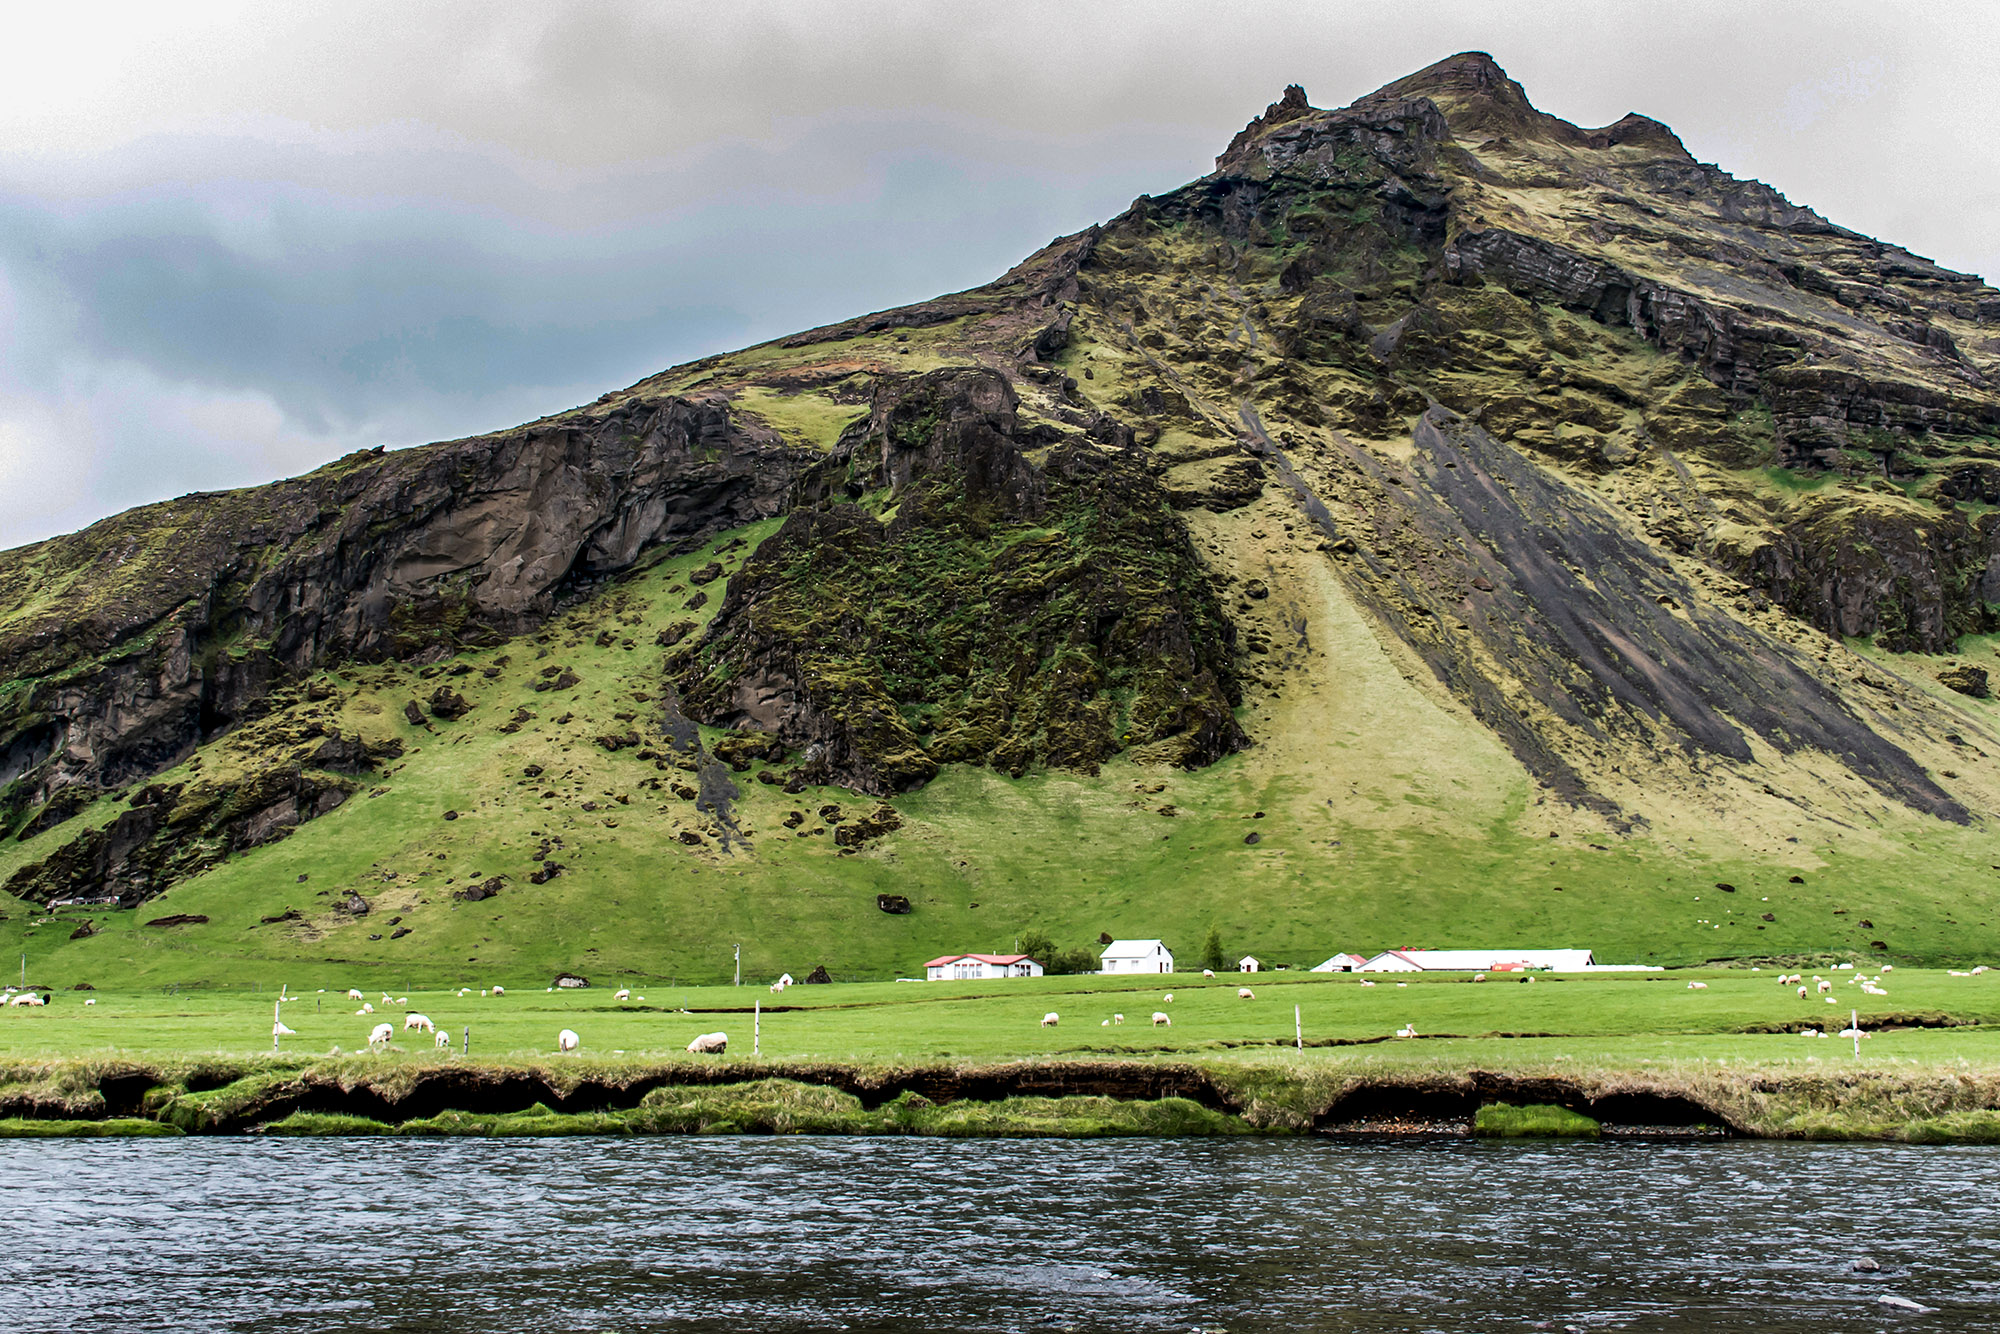 Epic Landscape in Iceland with green grass and sheep